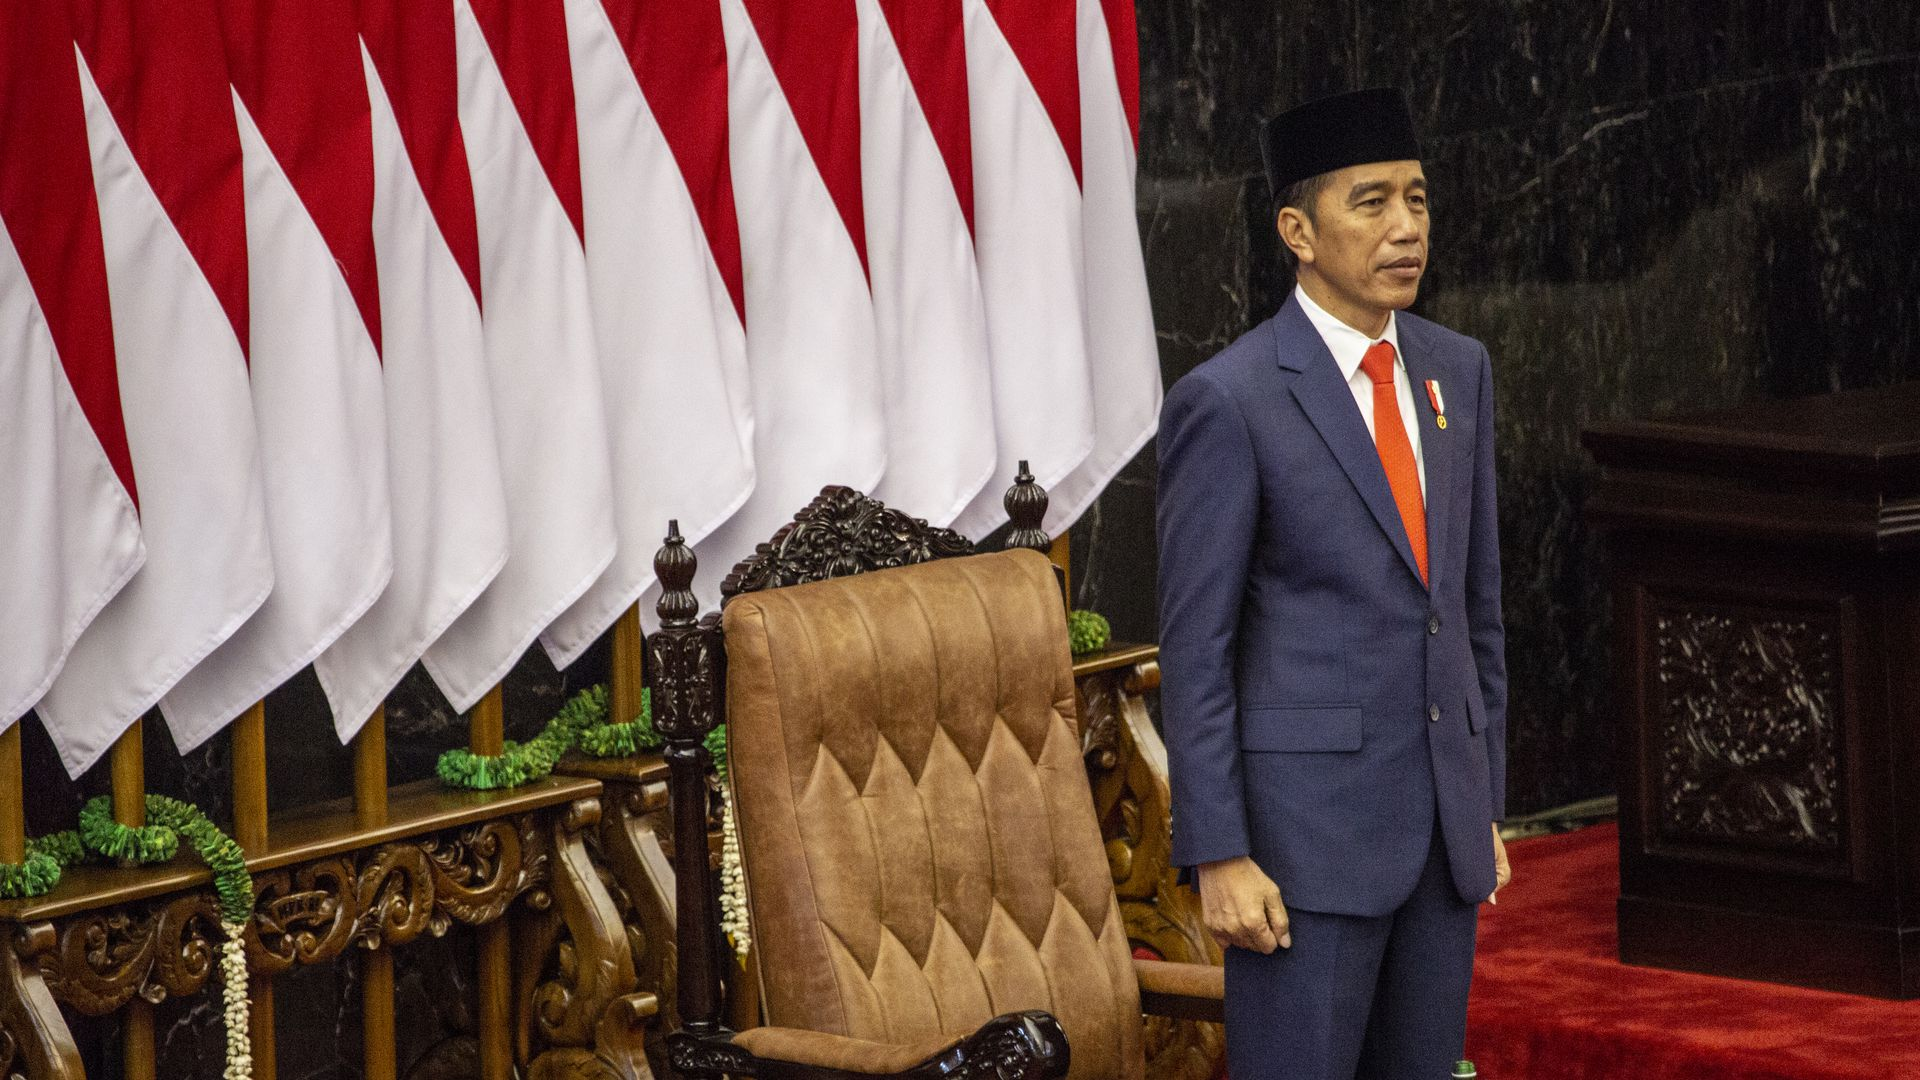 Joko Widodo standing on stage at his second inauguration ceremony